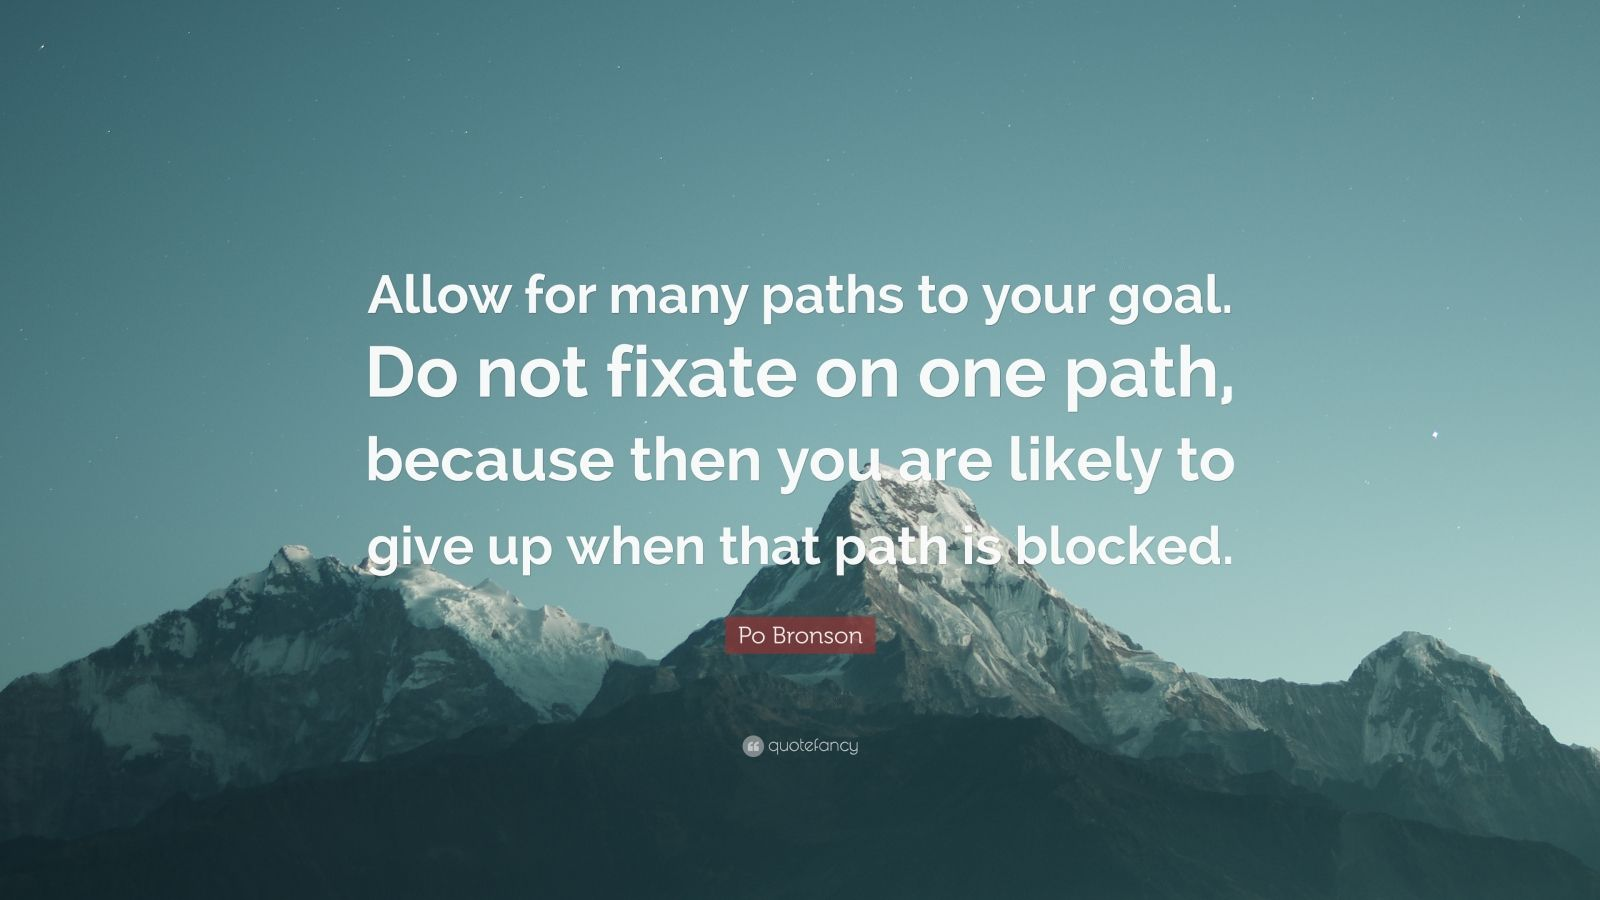 """Po Bronson Quote: """"Allow for many paths to your goal. Do not fixate on one path, because then you are likely to give up when that path is blocked."""""""